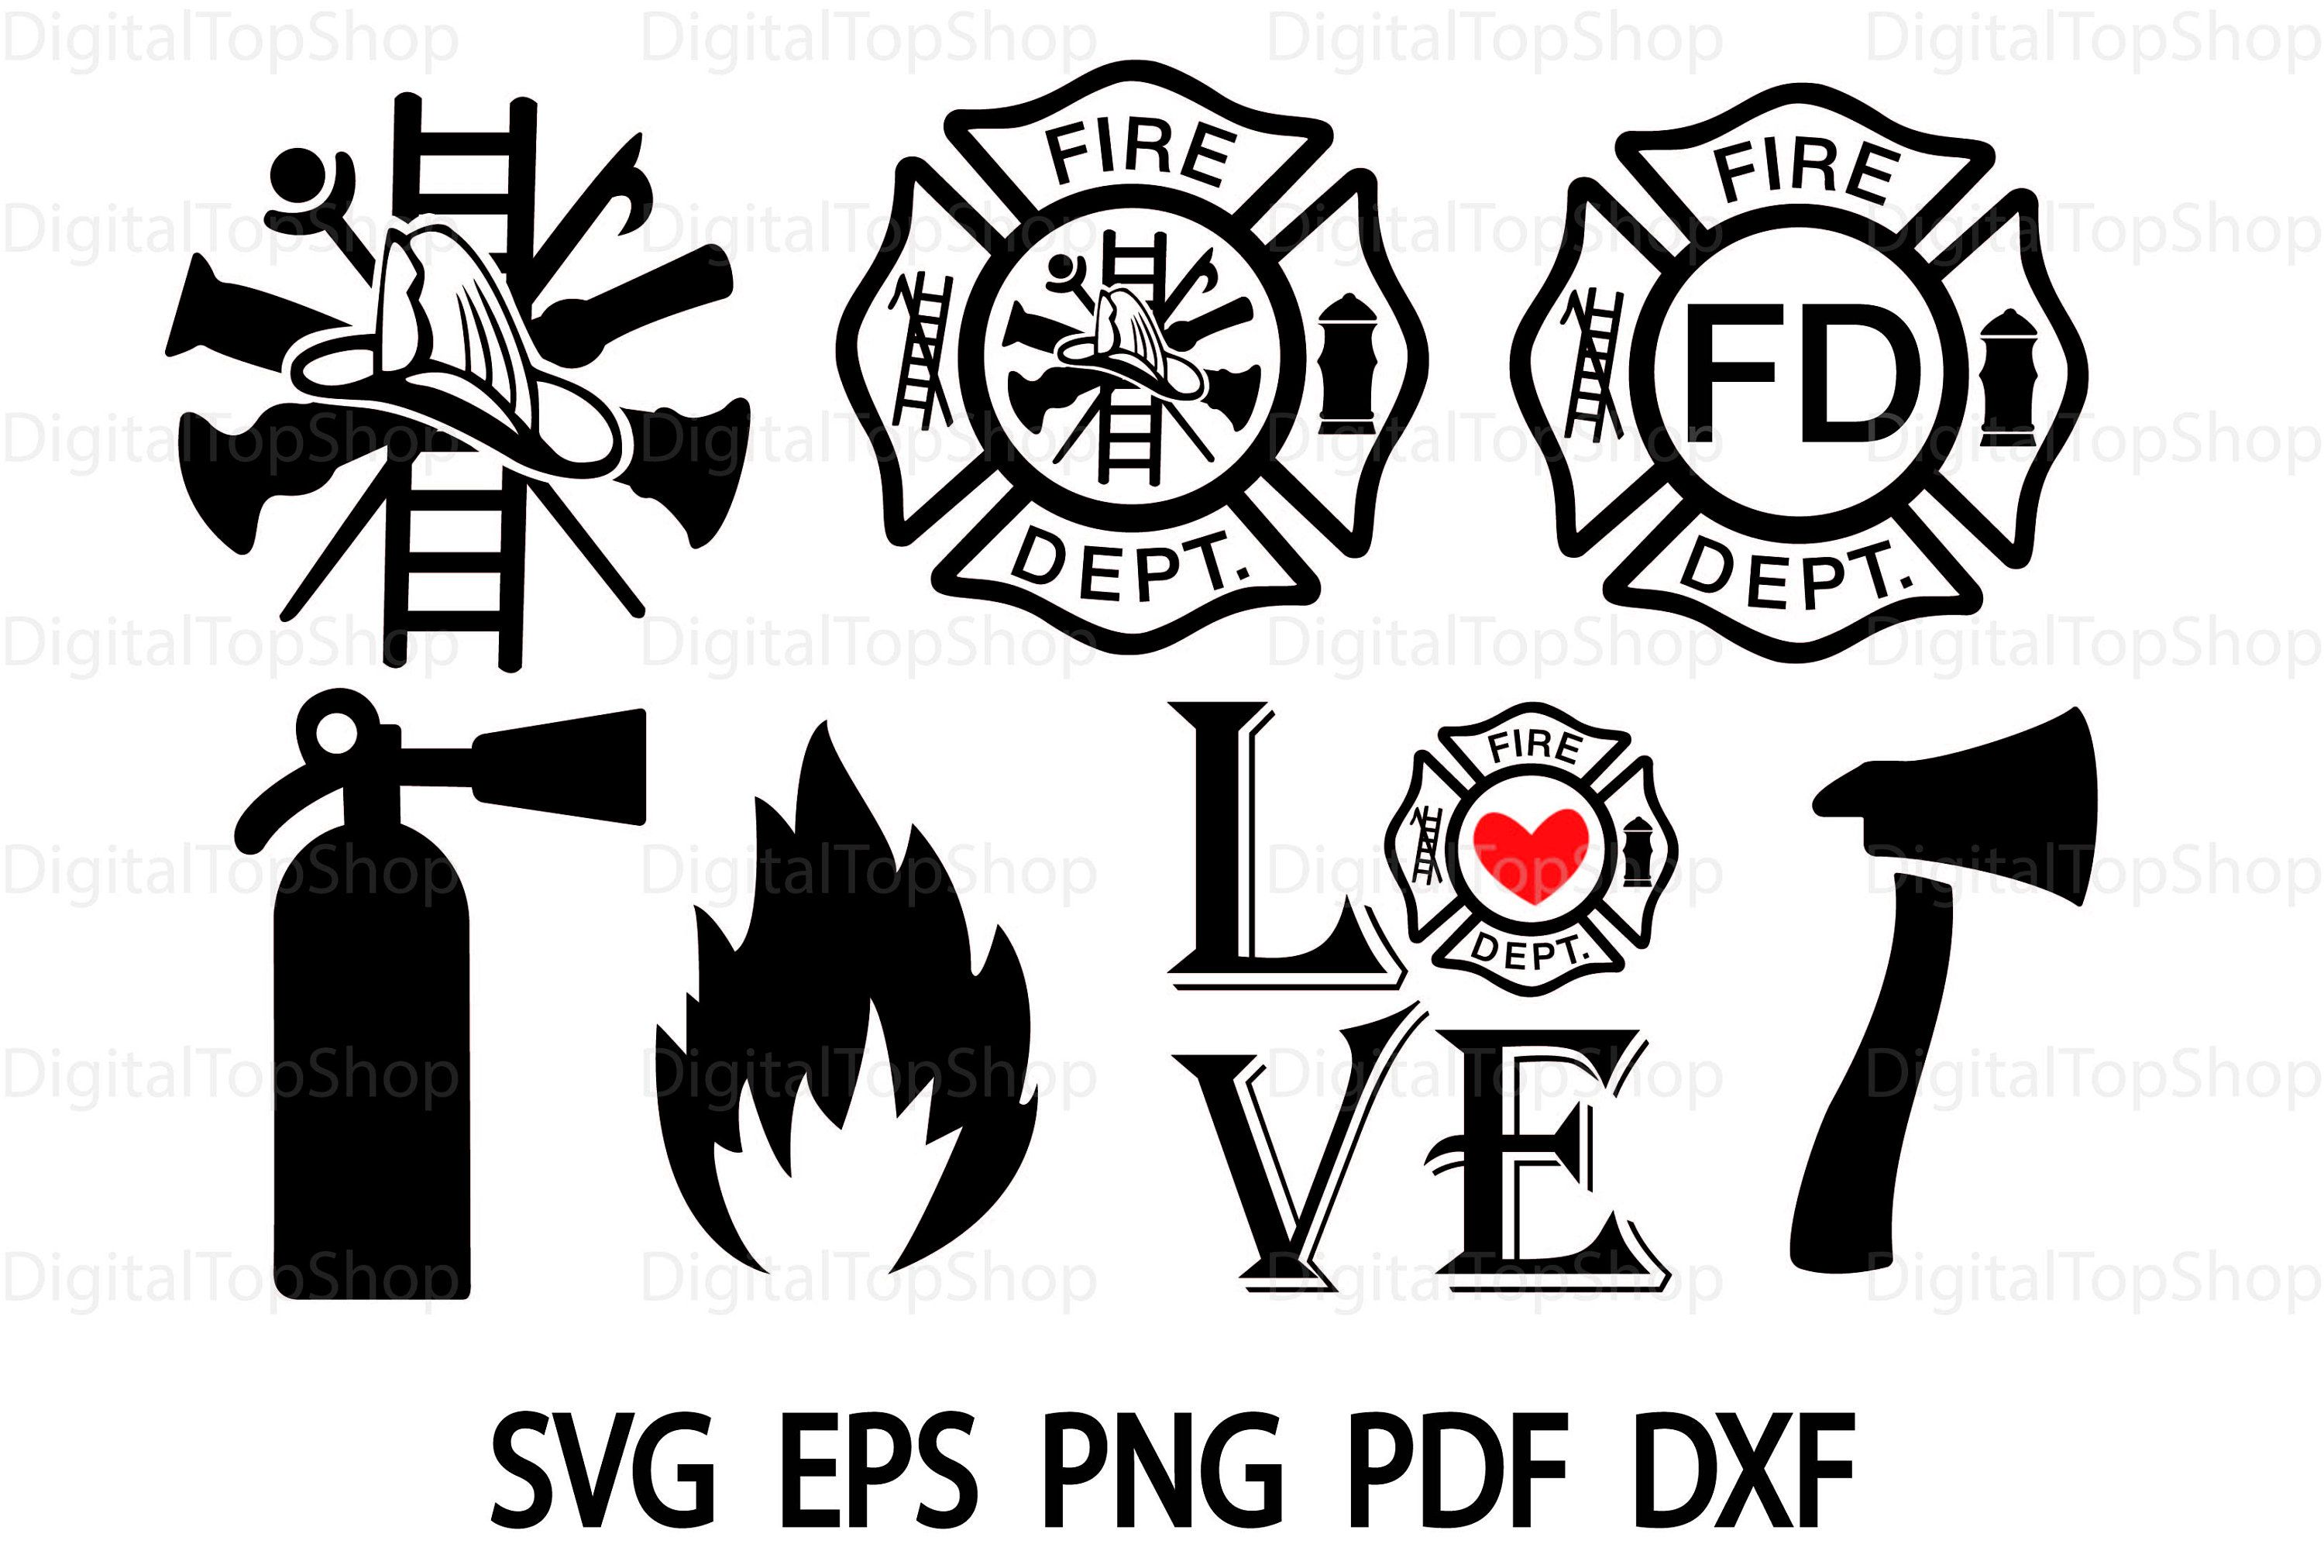 Fire Department Svg Fire Dept Svg Maltese Cross Svg Firefighter Svg Love Fire Department Svg Fire And Rescue Svg File Fire Ax Paramedic Svg